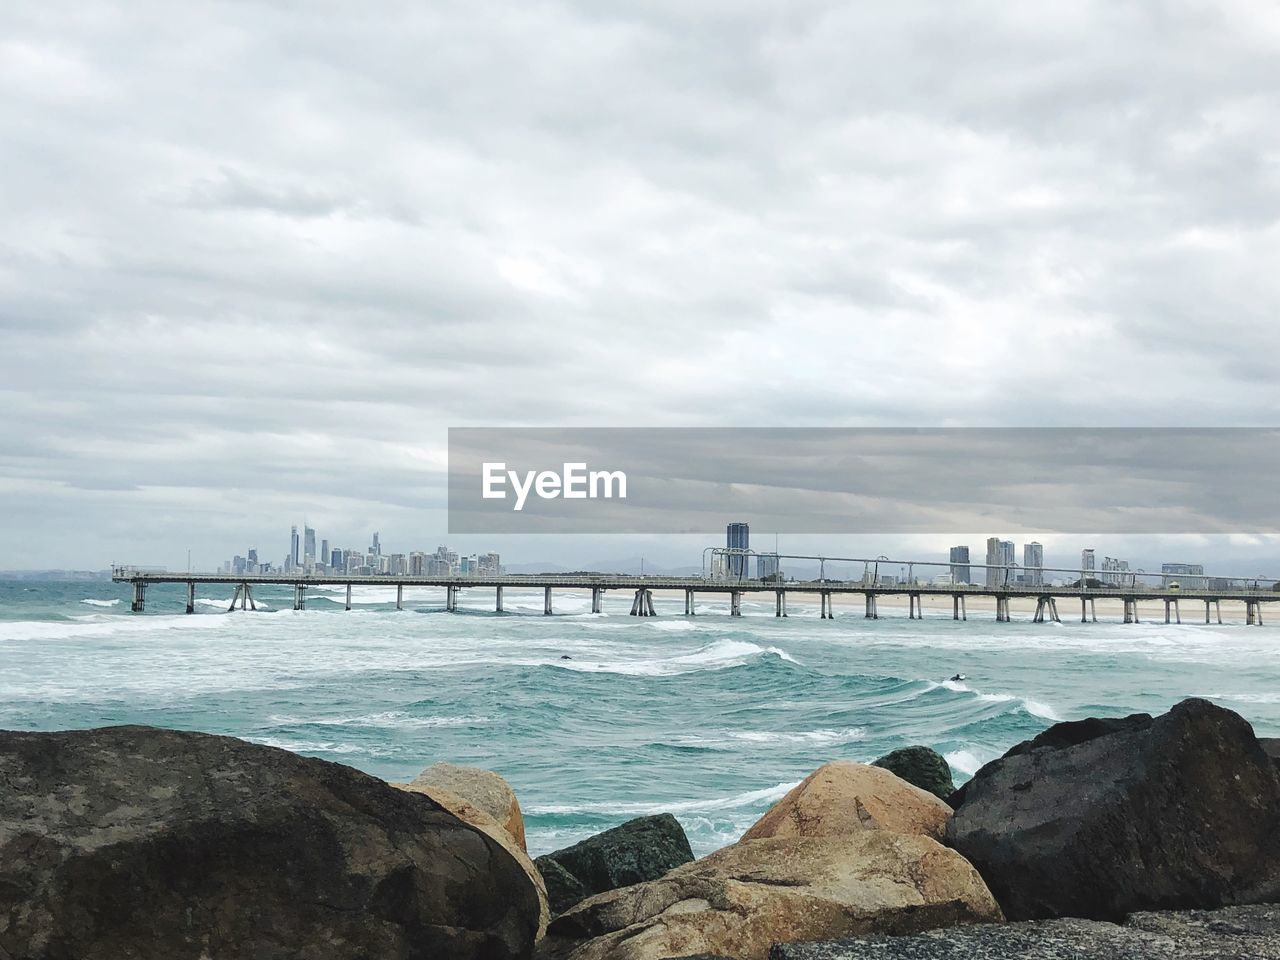 water, cloud - sky, sky, architecture, built structure, nature, building exterior, no people, sea, rock, city, day, rock - object, solid, bridge, scenics - nature, beauty in nature, bridge - man made structure, outdoors, cityscape, office building exterior, skyscraper